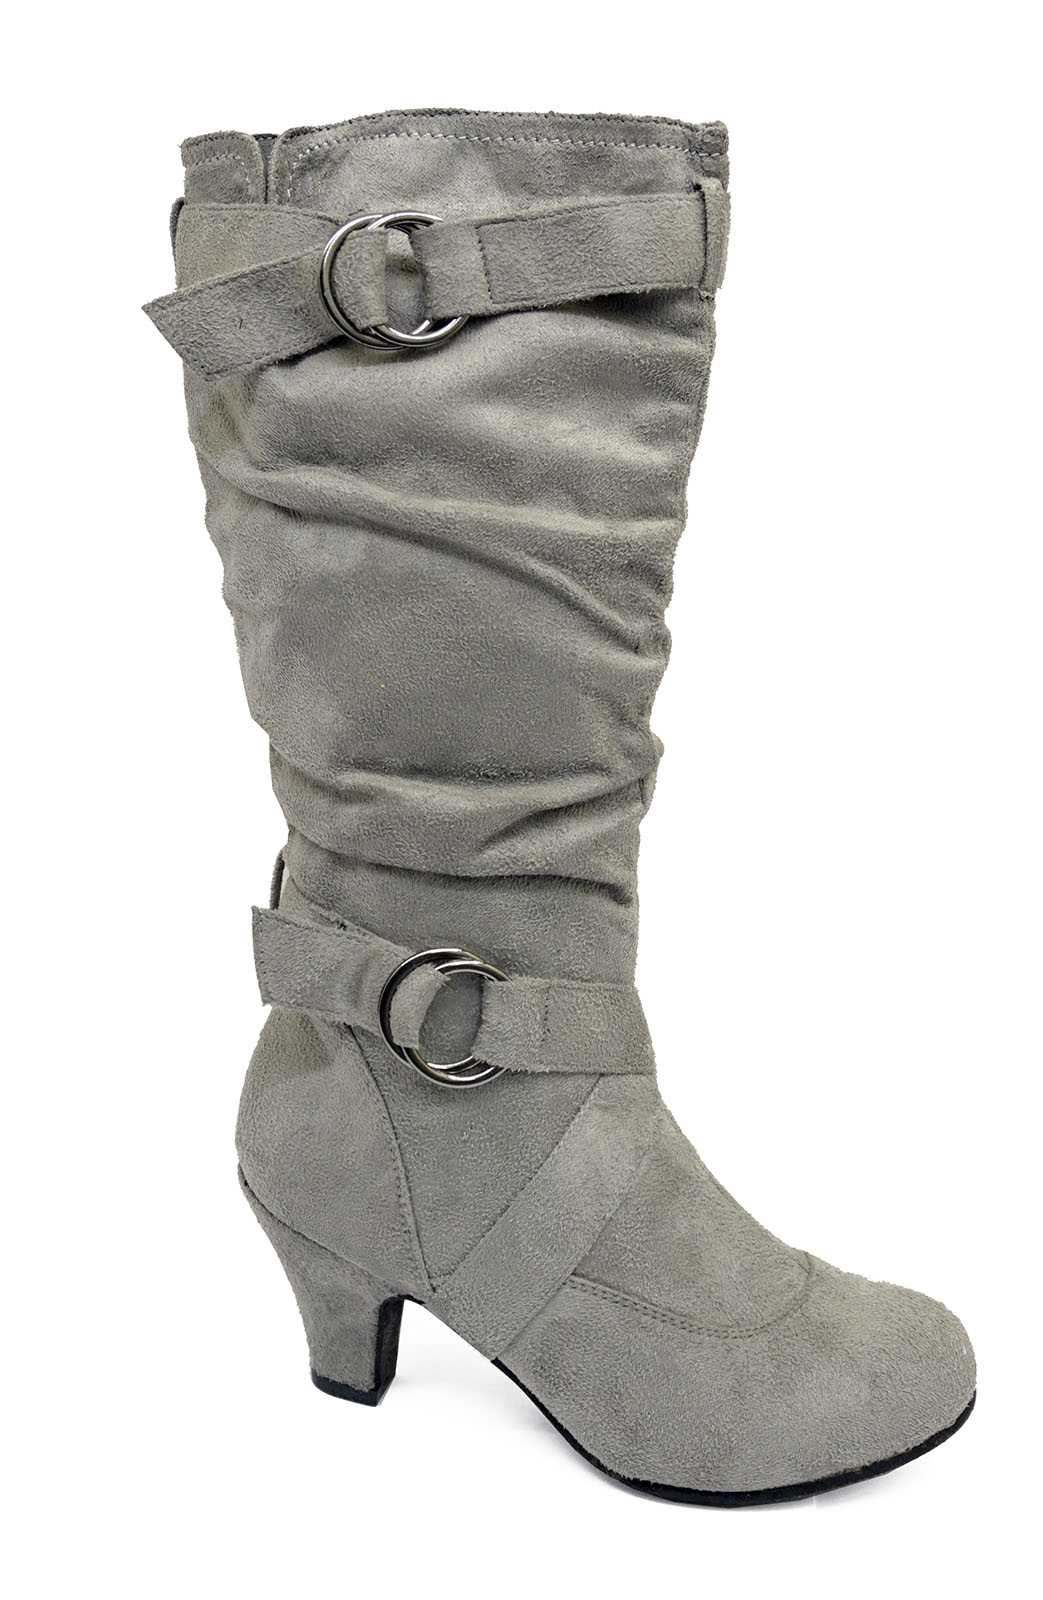 LADIES-GREY-ZIP-UP-BIKER-SLOUCH-RUCHED-TALL-KNEE-CALF-LOW-HEEL-BOOTS-SHOES-4-10 thumbnail 29